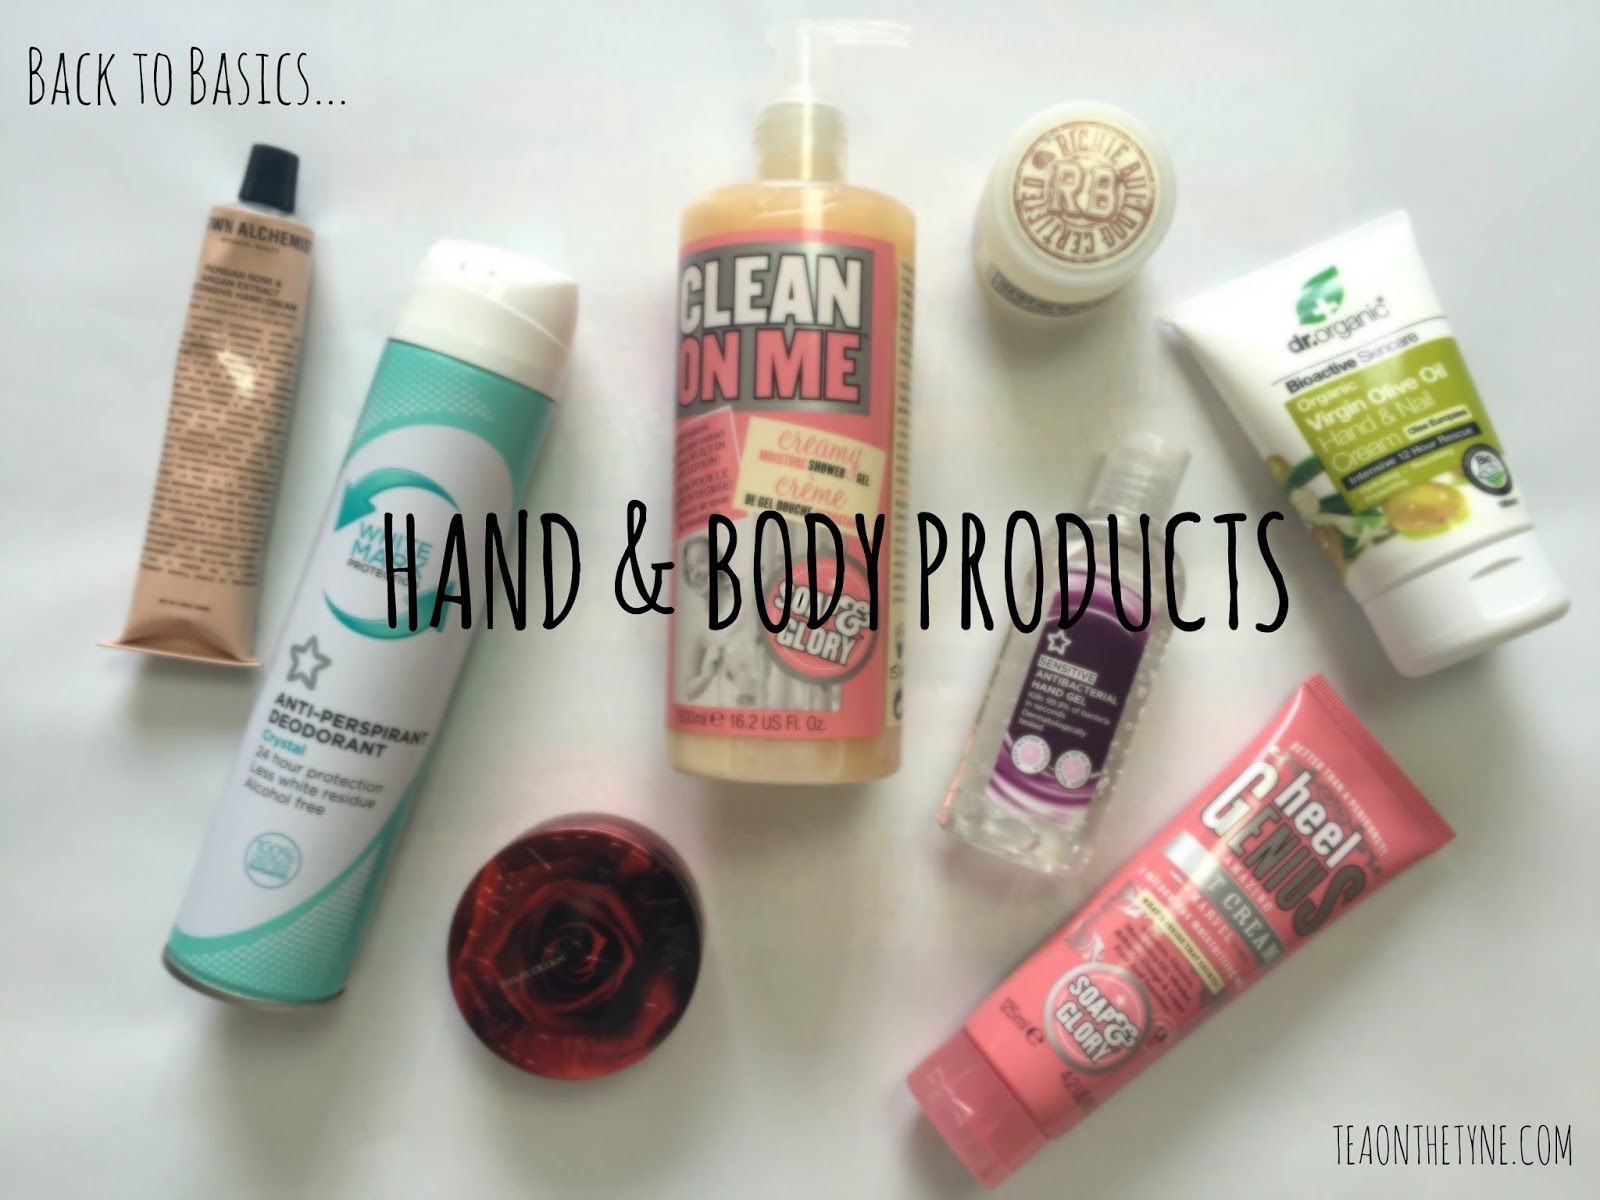 Cruelty Free Vegan Hand and Body Products